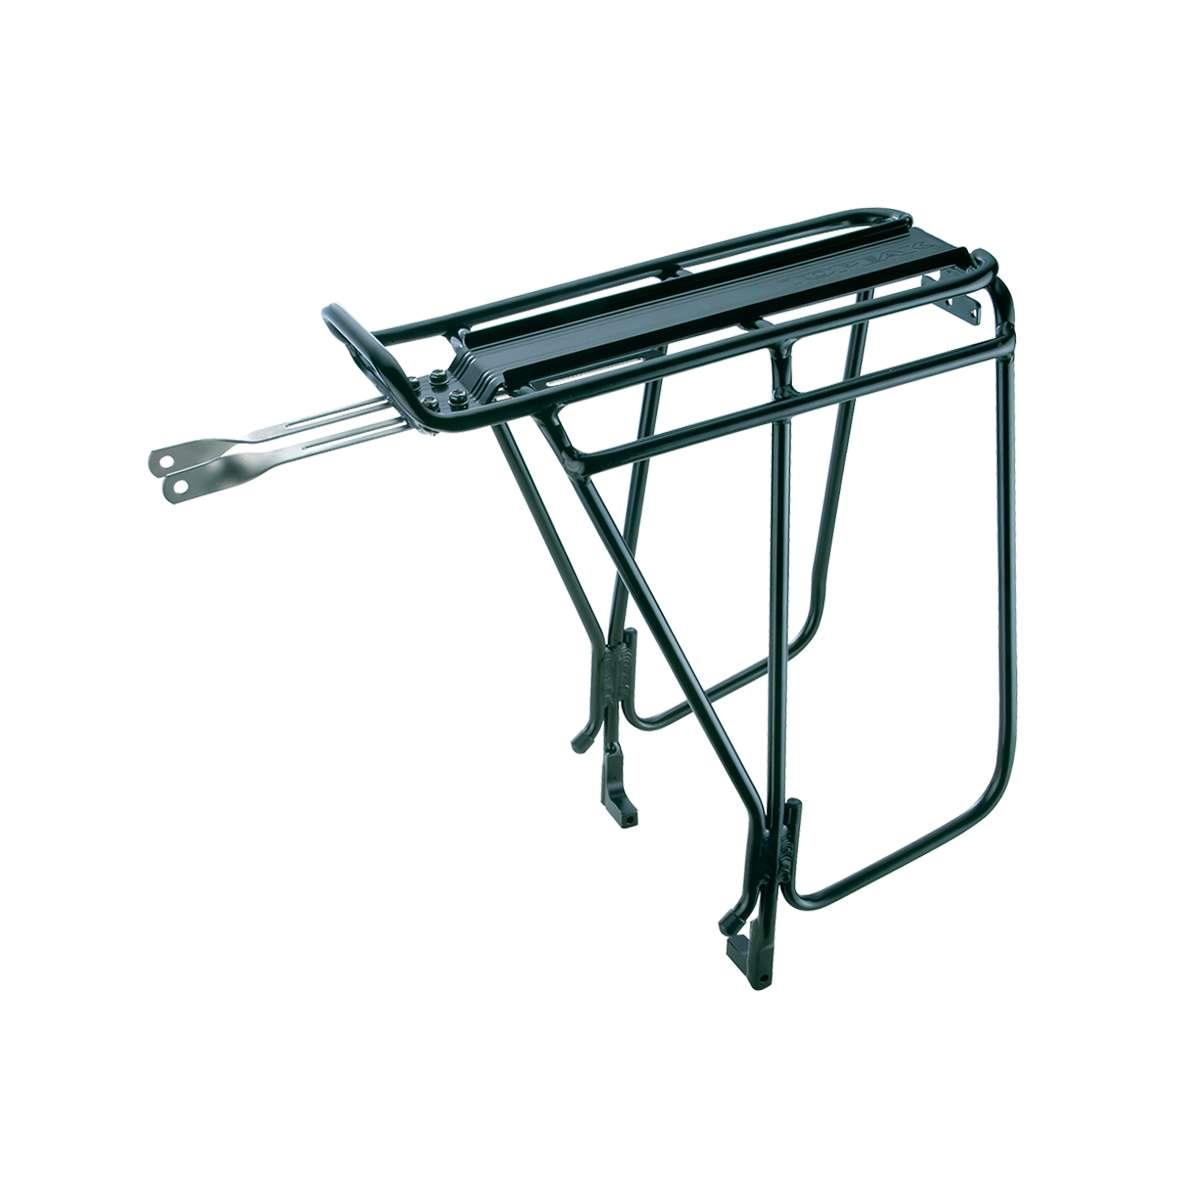 TOPEAK UNI SUPER TOURIST DX DISC RACK